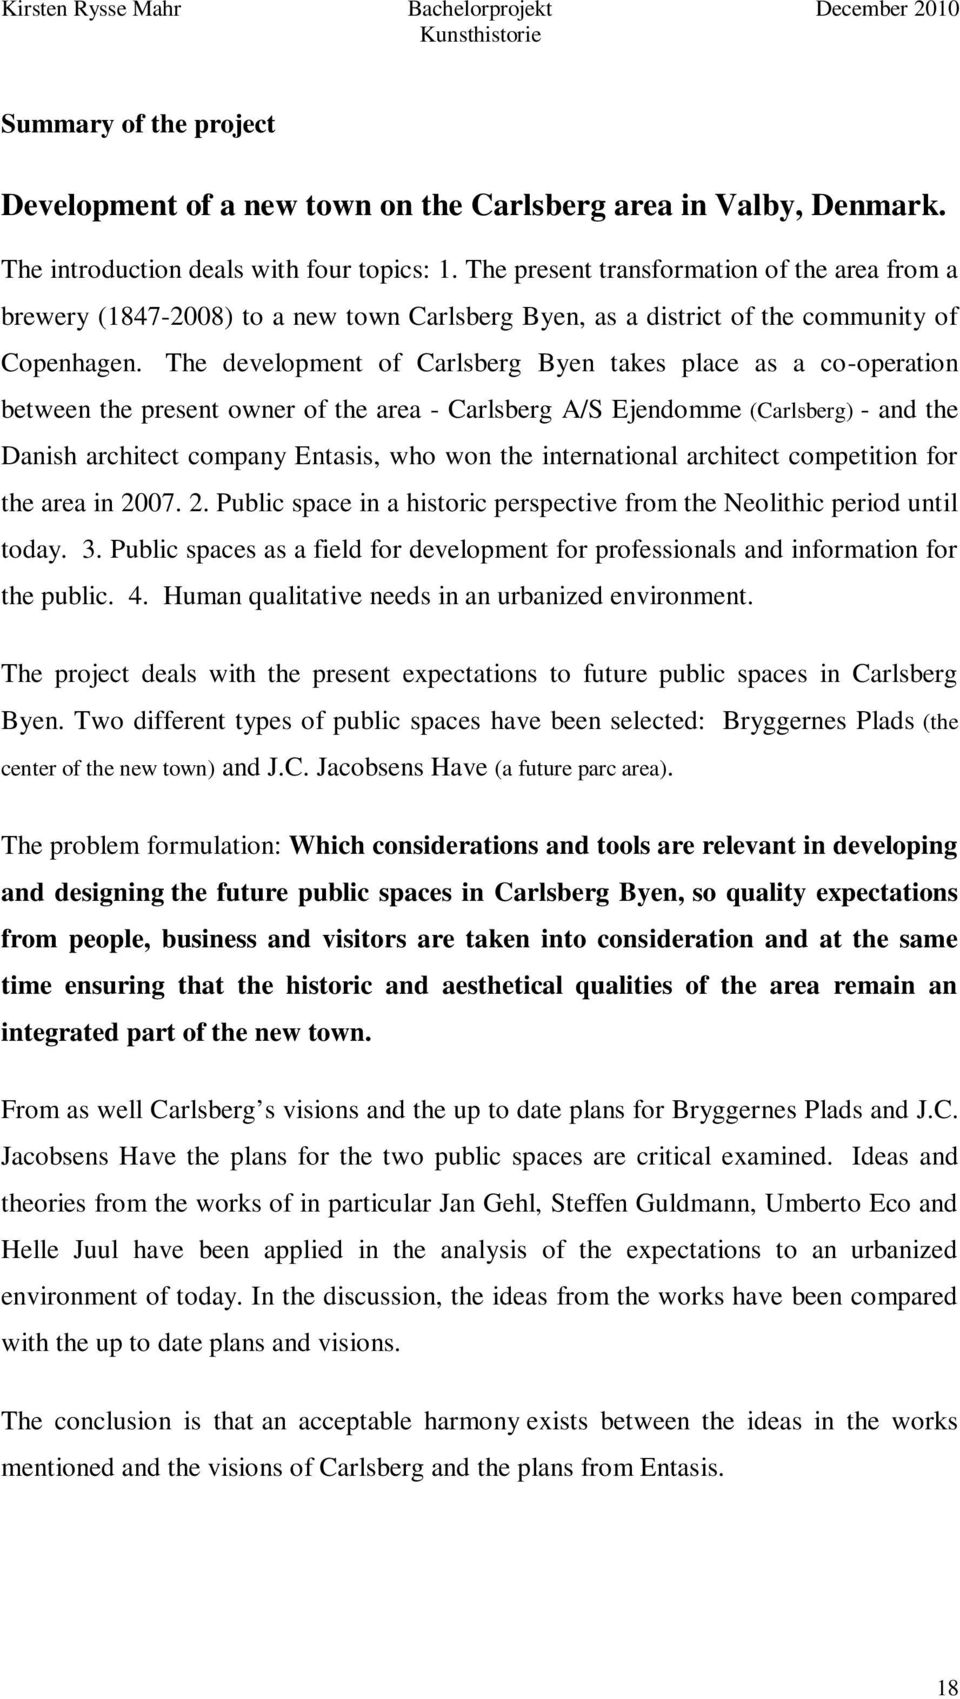 The development of Carlsberg Byen takes place as a co-operation between the present owner of the area - Carlsberg A/S Ejendomme (Carlsberg) - and the Danish architect company Entasis, who won the